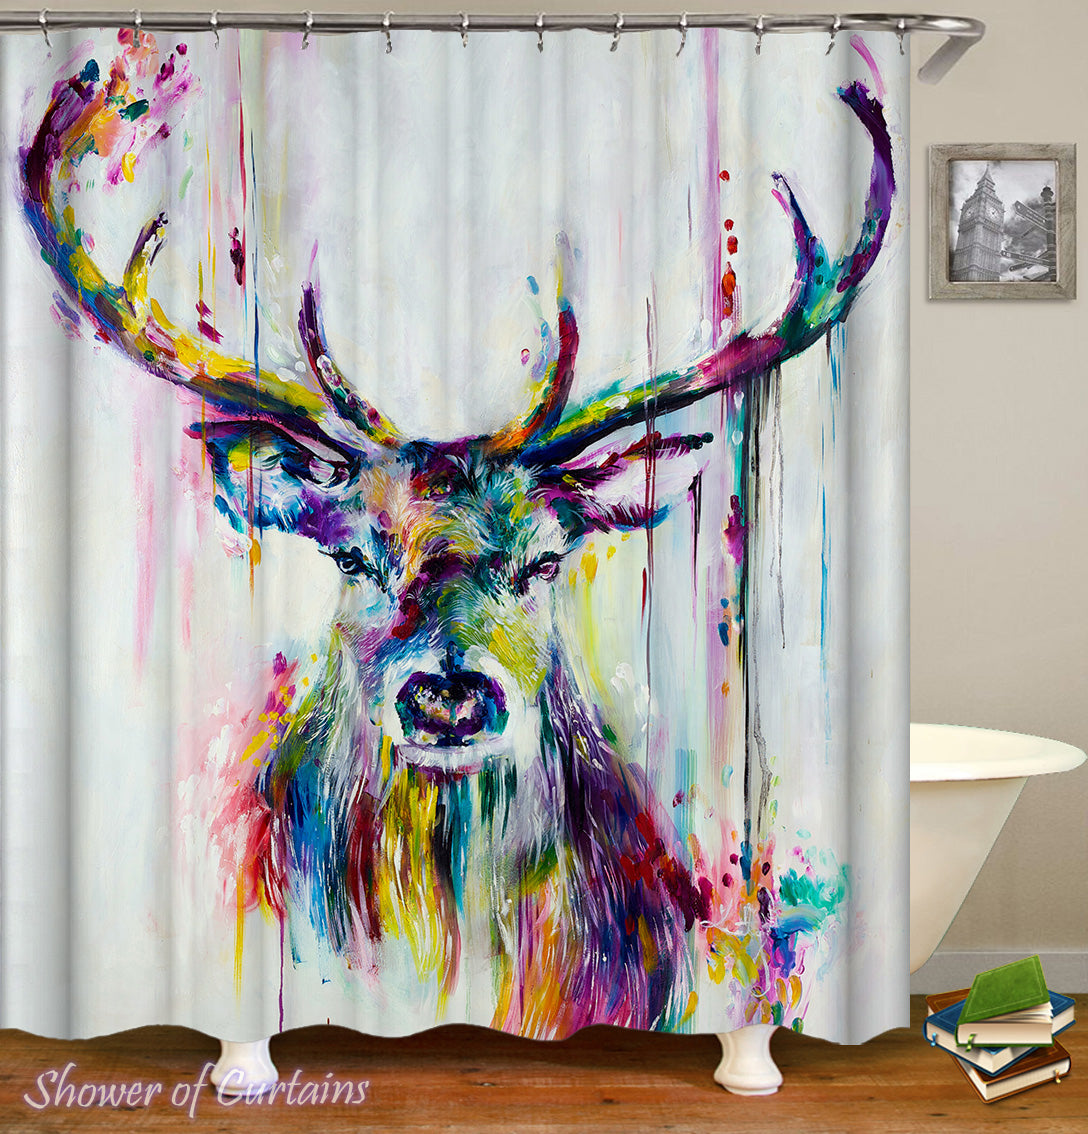 art colorful shower curtains colorful deer painting - Colorful Shower Curtains